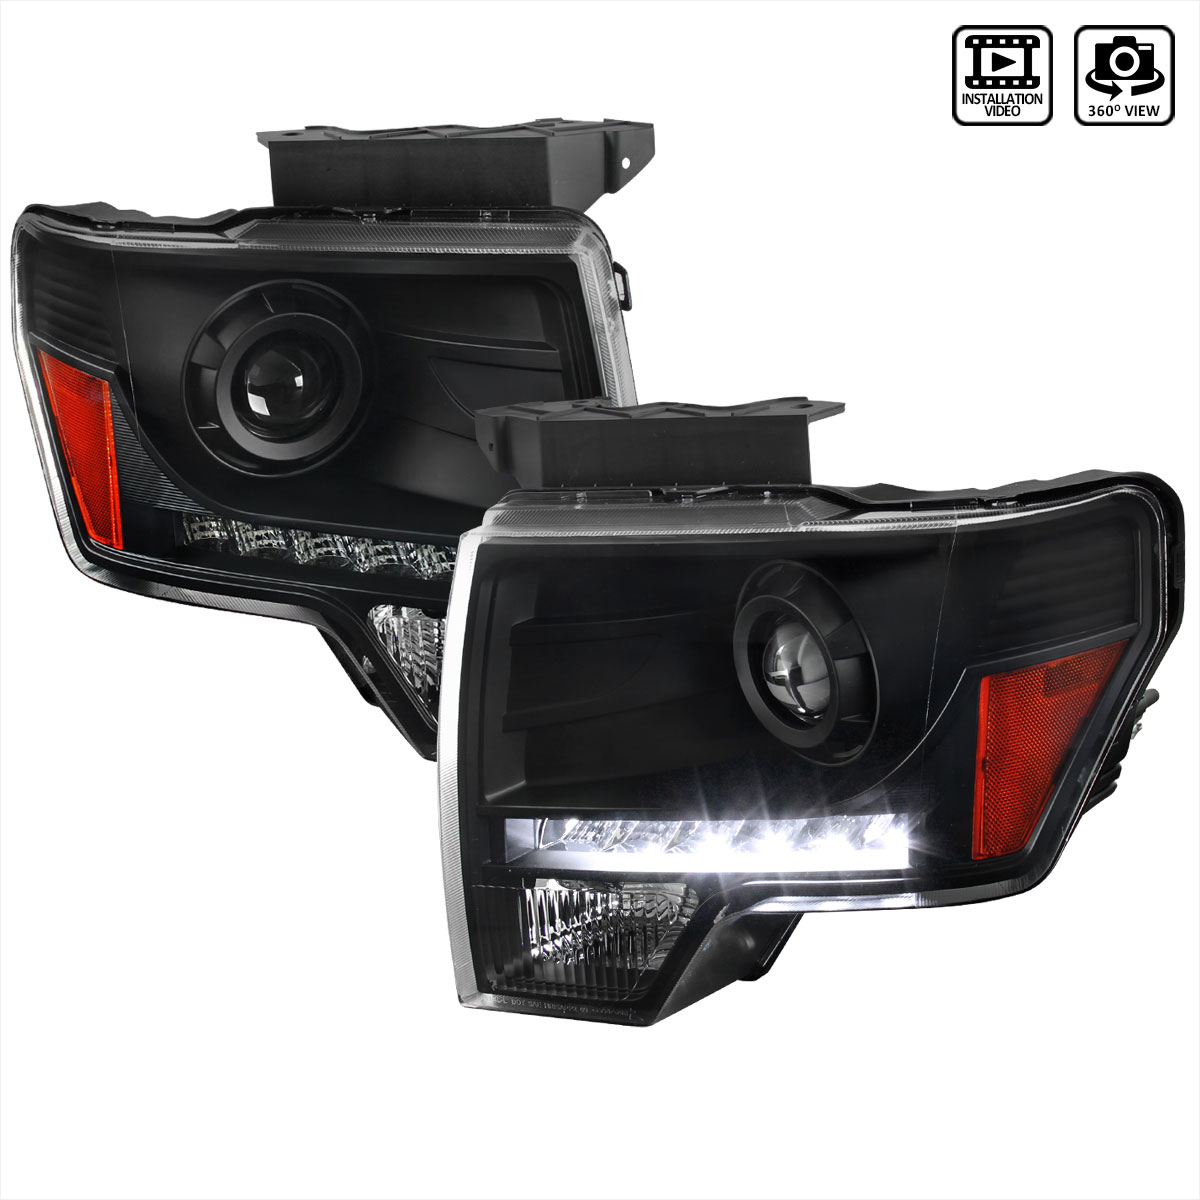 2014 F150 Headlights >> Spec D Tuning 2lhp F15009jm 8 Rs Ford F150 Black Projector Headlights With Led 2009 2014